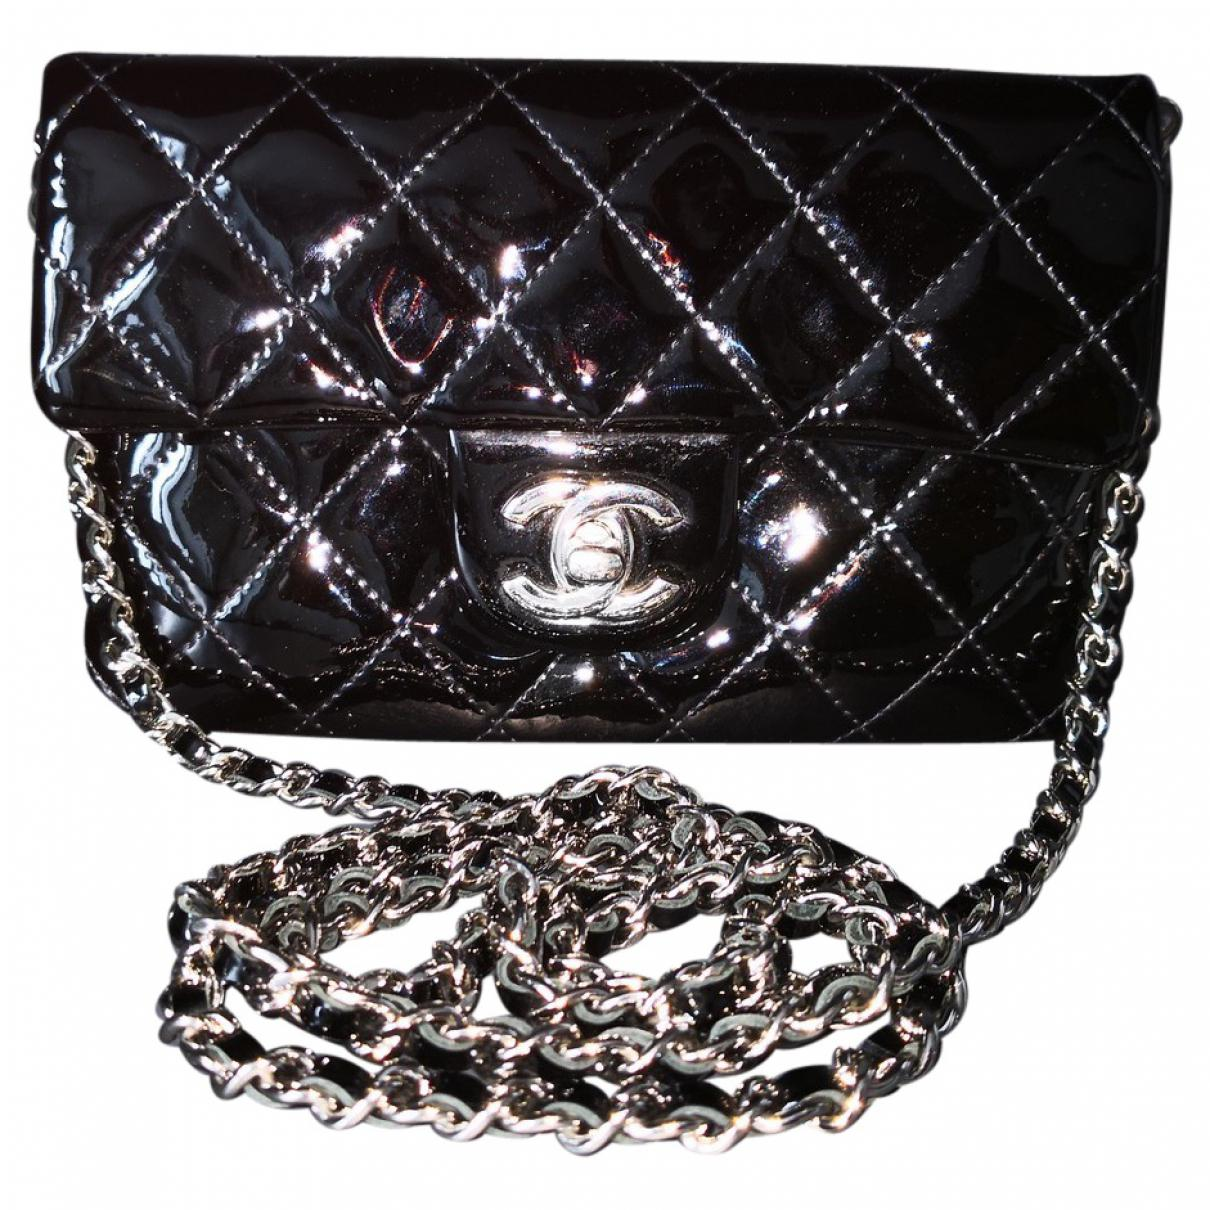 614ea6c6d8c0 Lyst - Chanel Timeless Patent Leather Crossbody Bag in Black